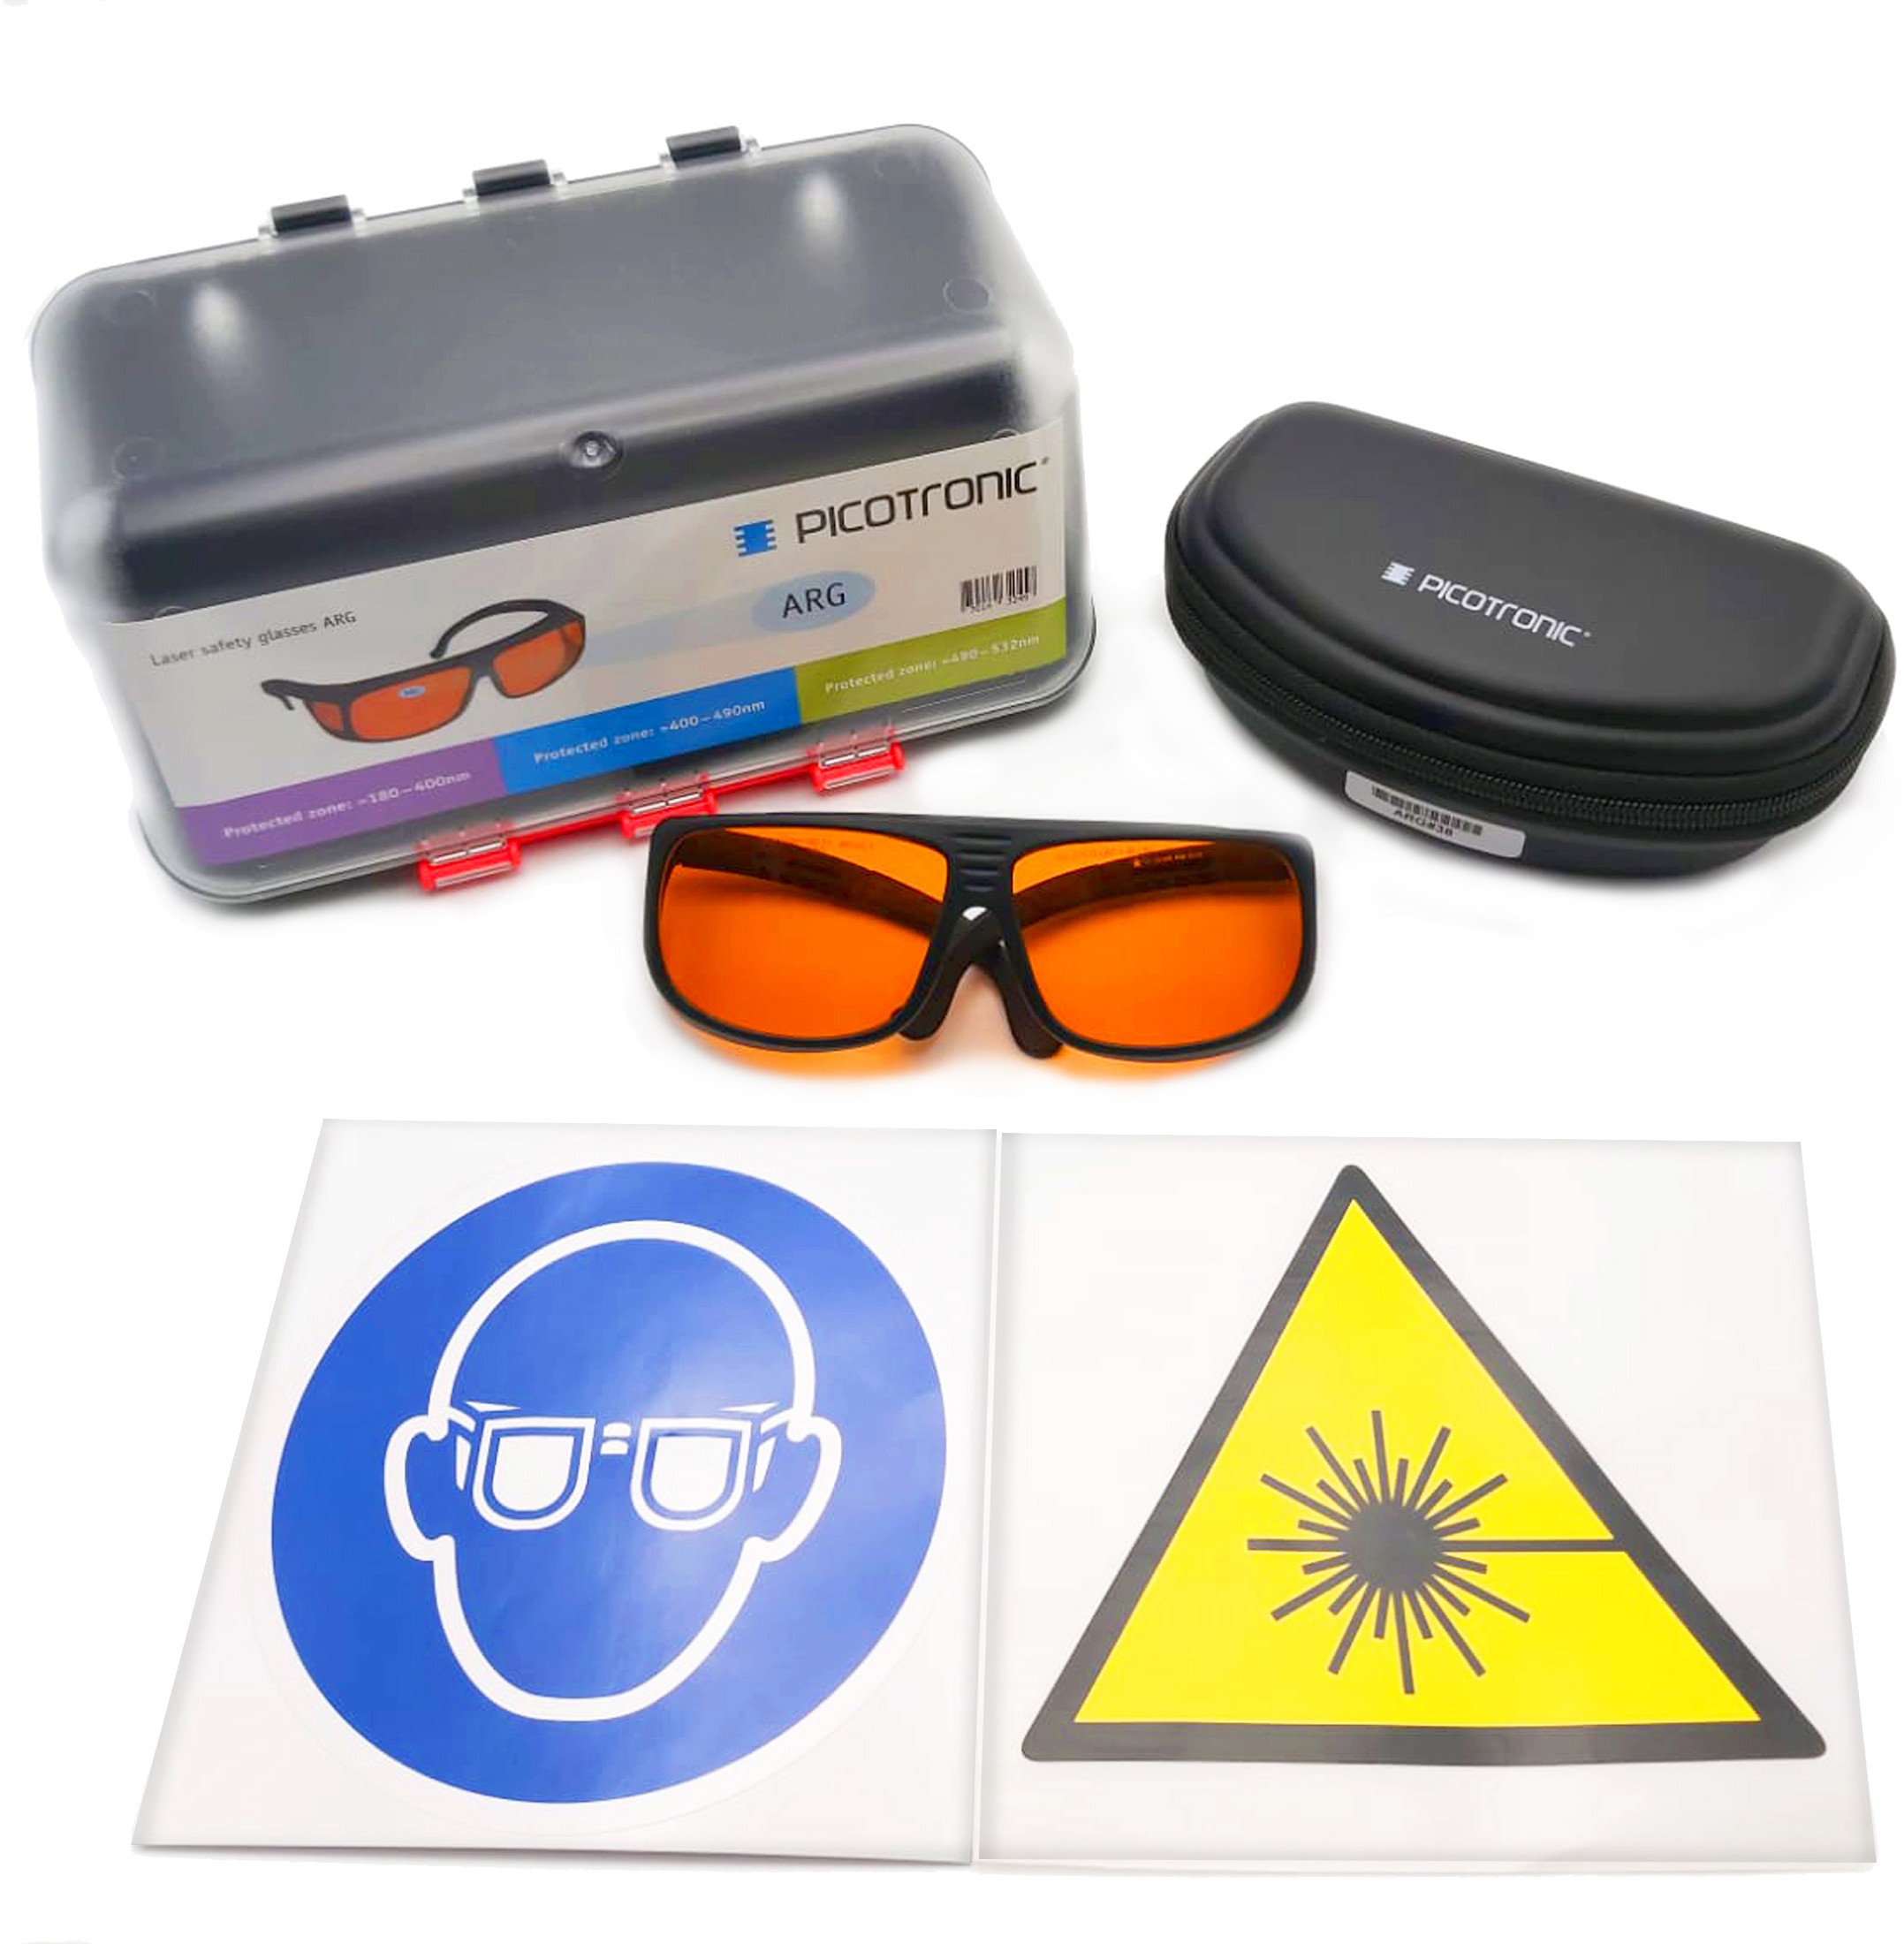 https://media.picotronic.de/products/ds_picture/lightbox/ARG_Box.jpg